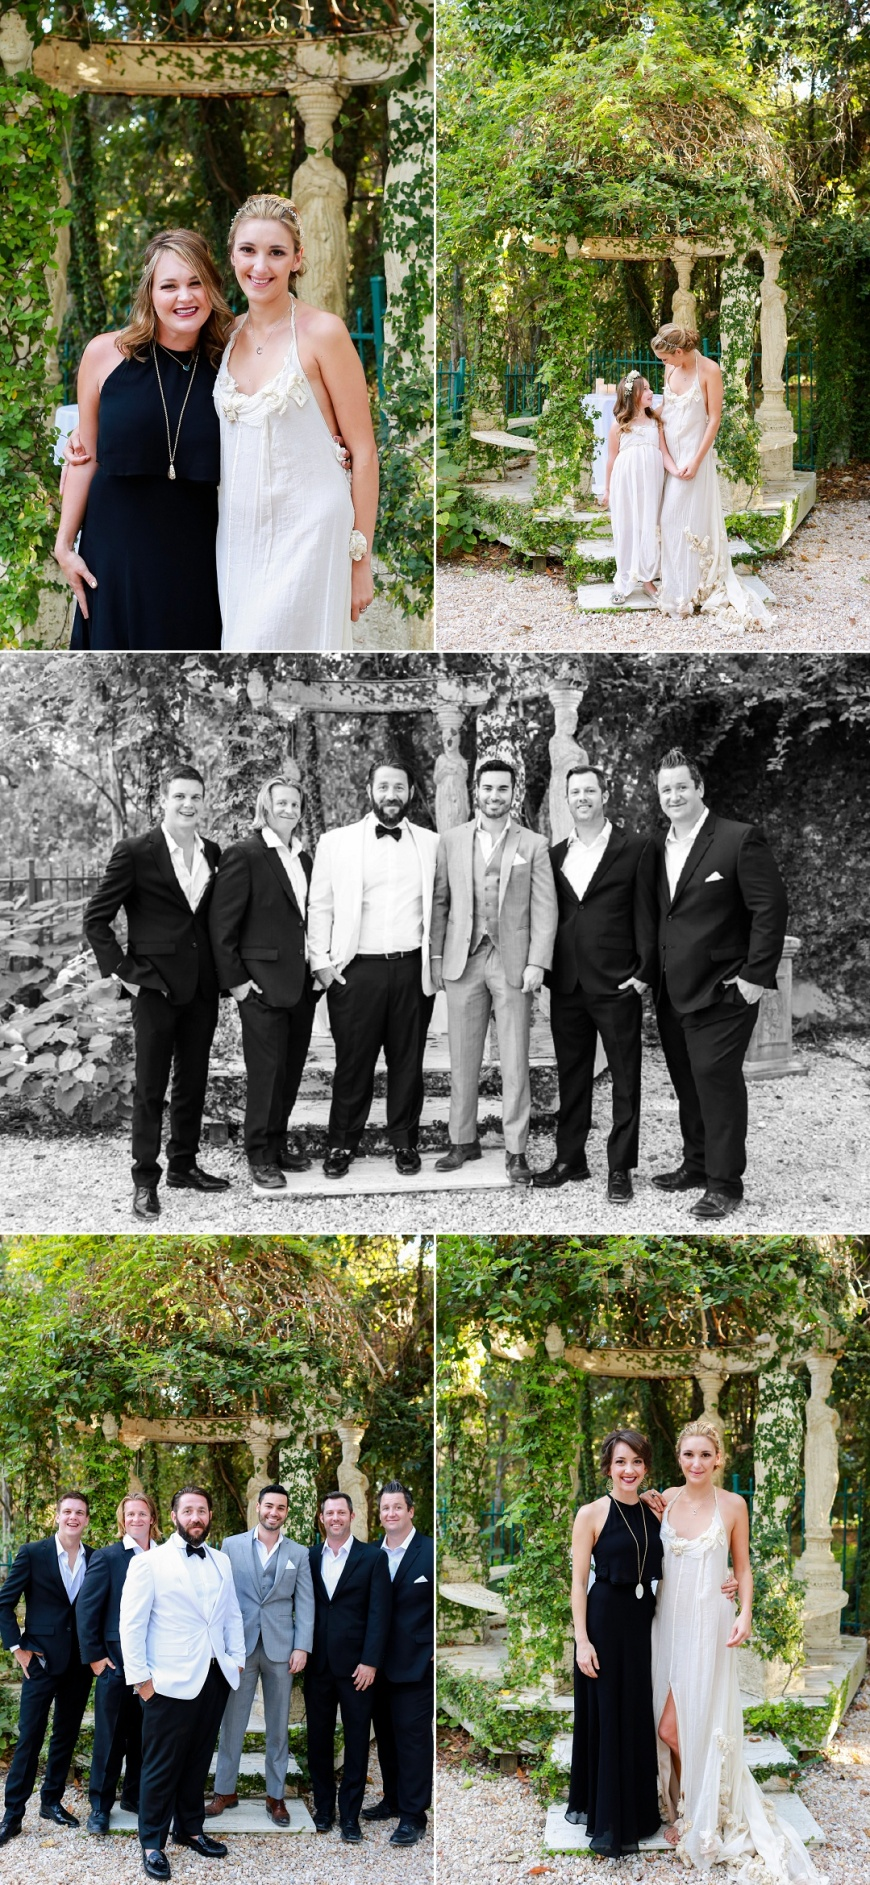 30A-Grayton-Beach-Wedding-Photographer_1043.jpg